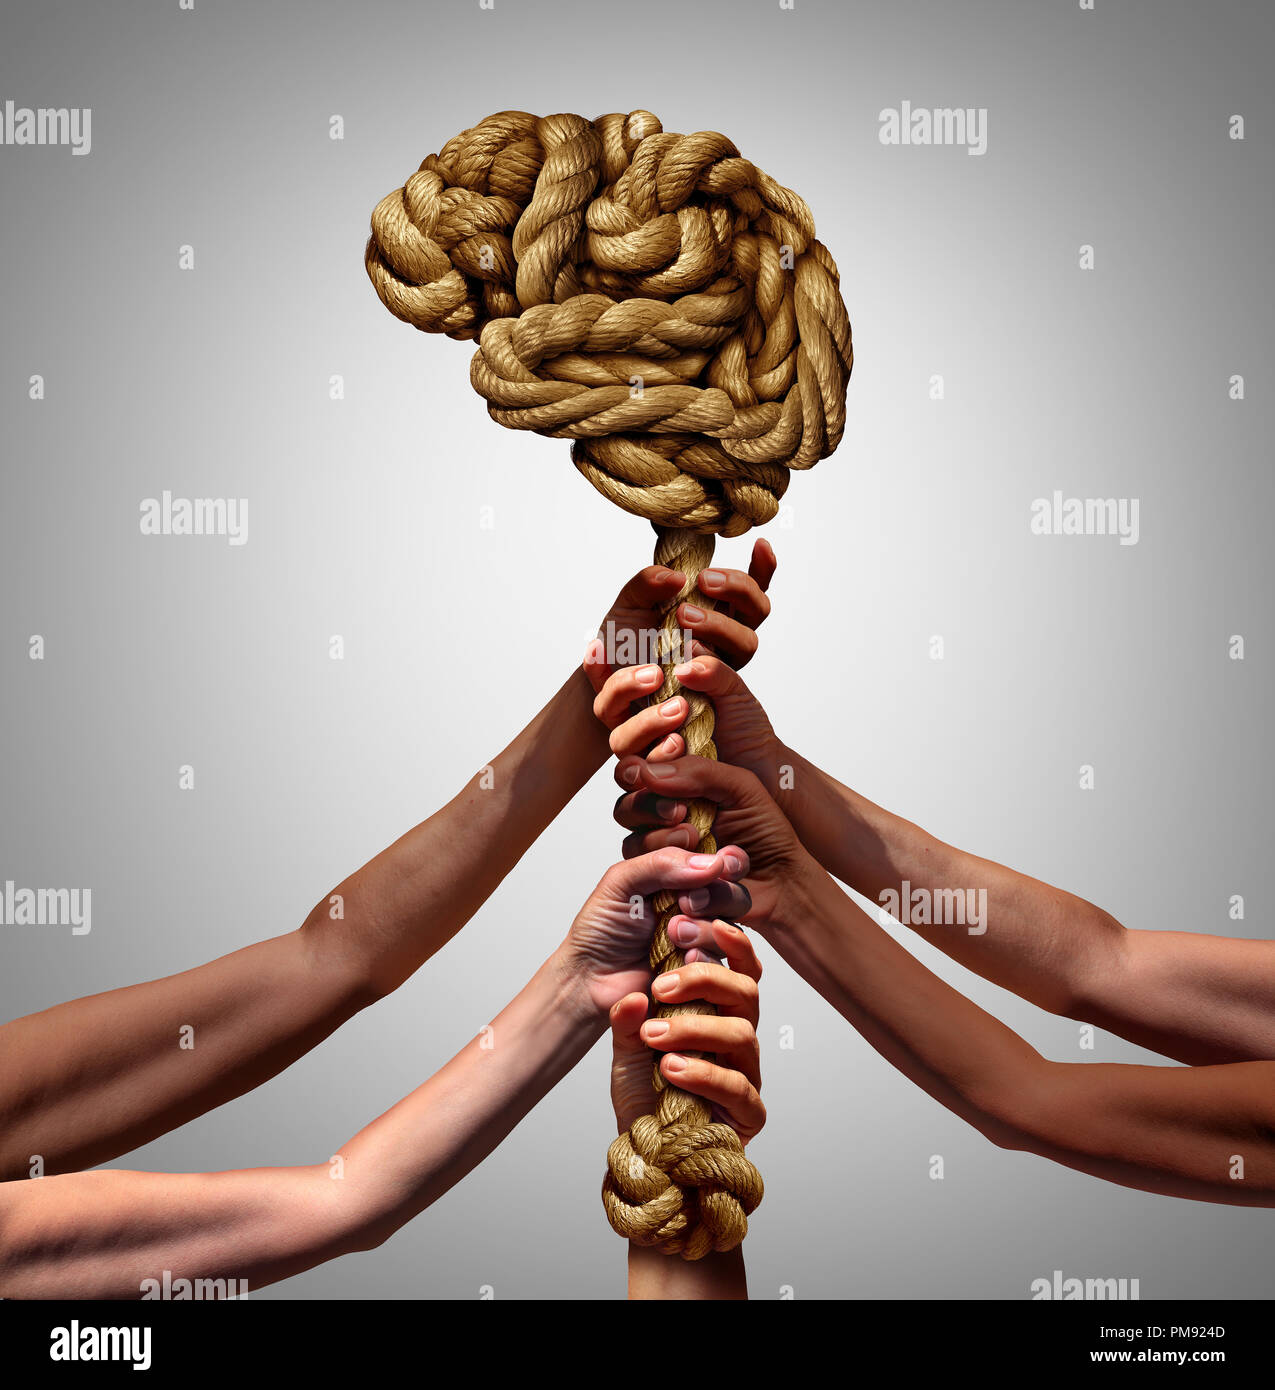 Psychology and society group mental health support concept as diverse people holding supporting a rope shaped as a thinking organ - Stock Image